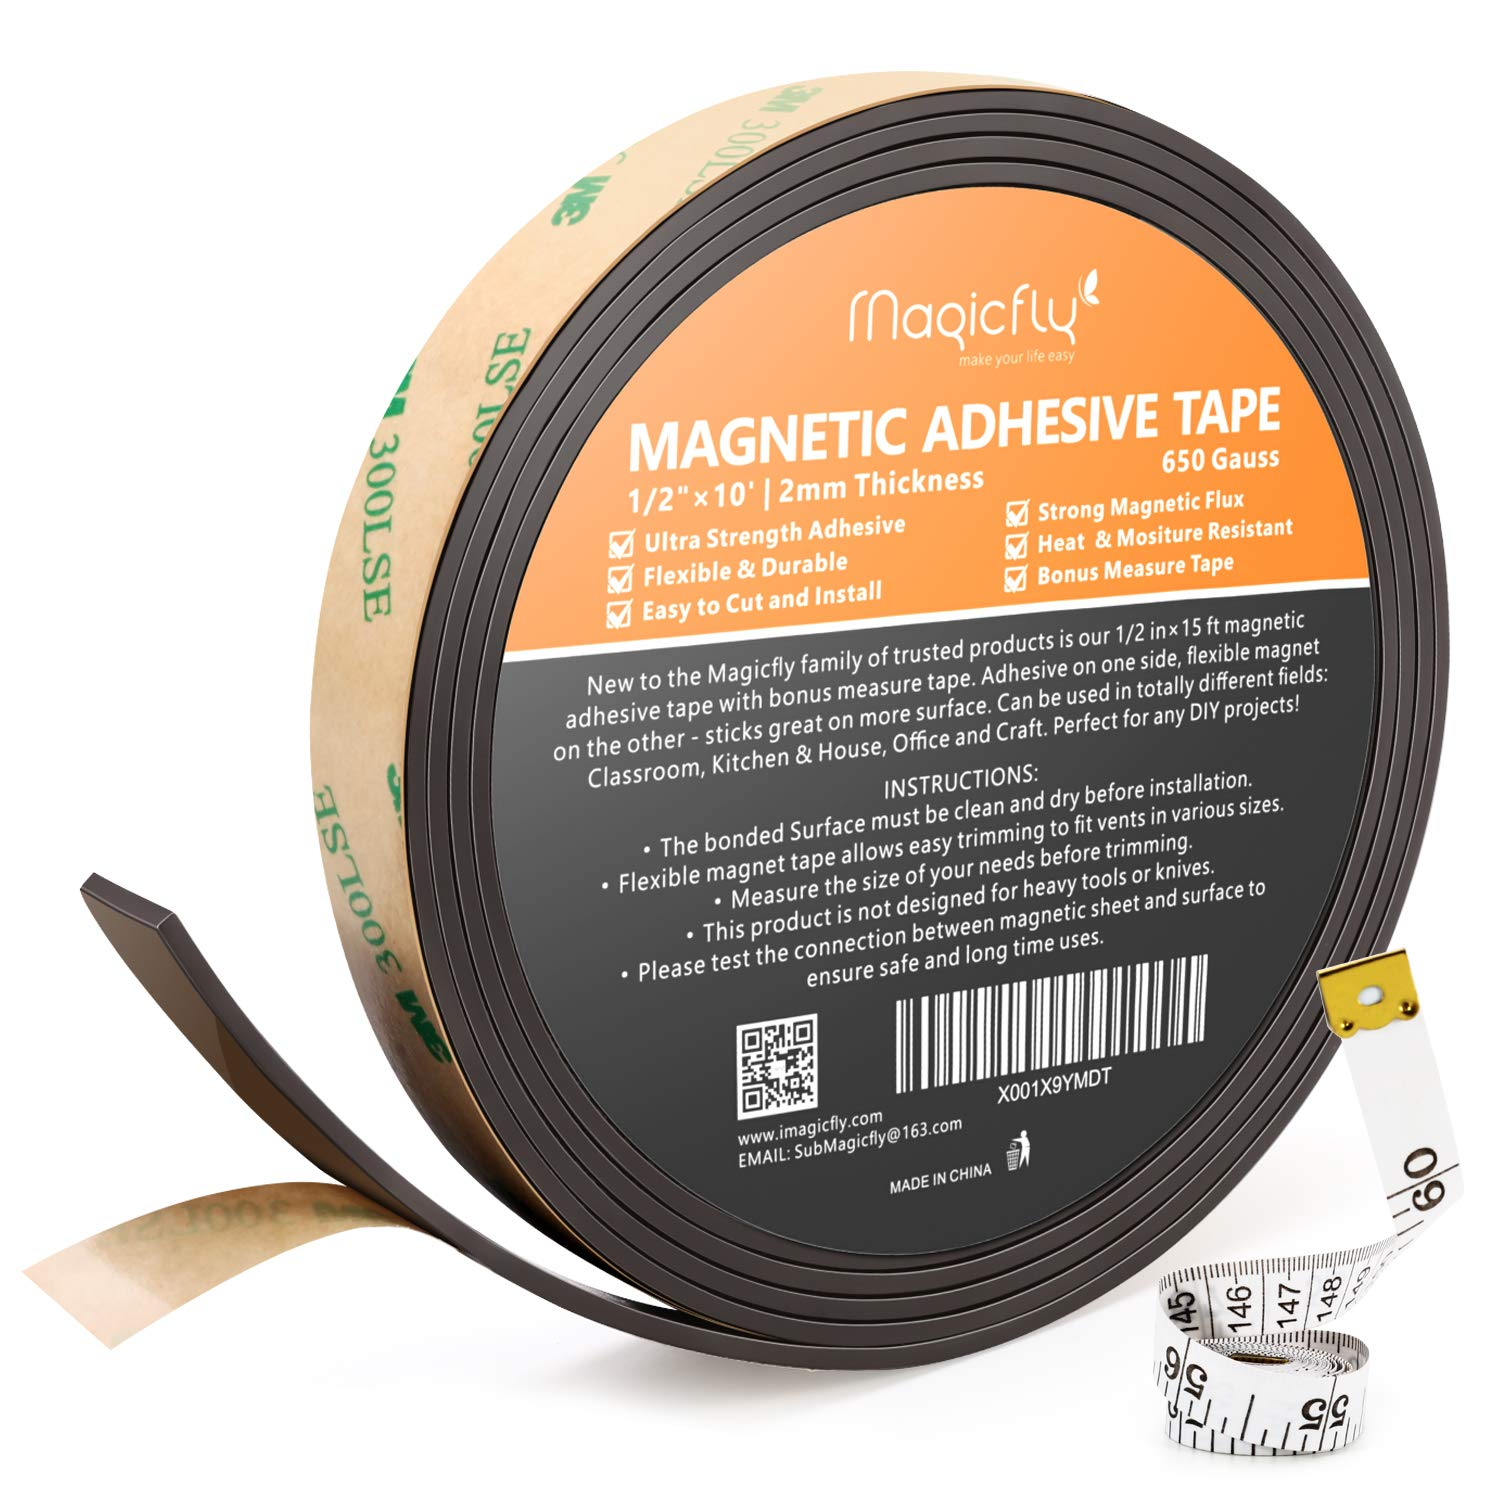 Magnetic Tape, Magicfly 1 Inch X 15 Feet Magnetic Strip with Strong Adhesive for Craft & DIY Projects, Sticky Magnetic Roll Perfect for Fridge